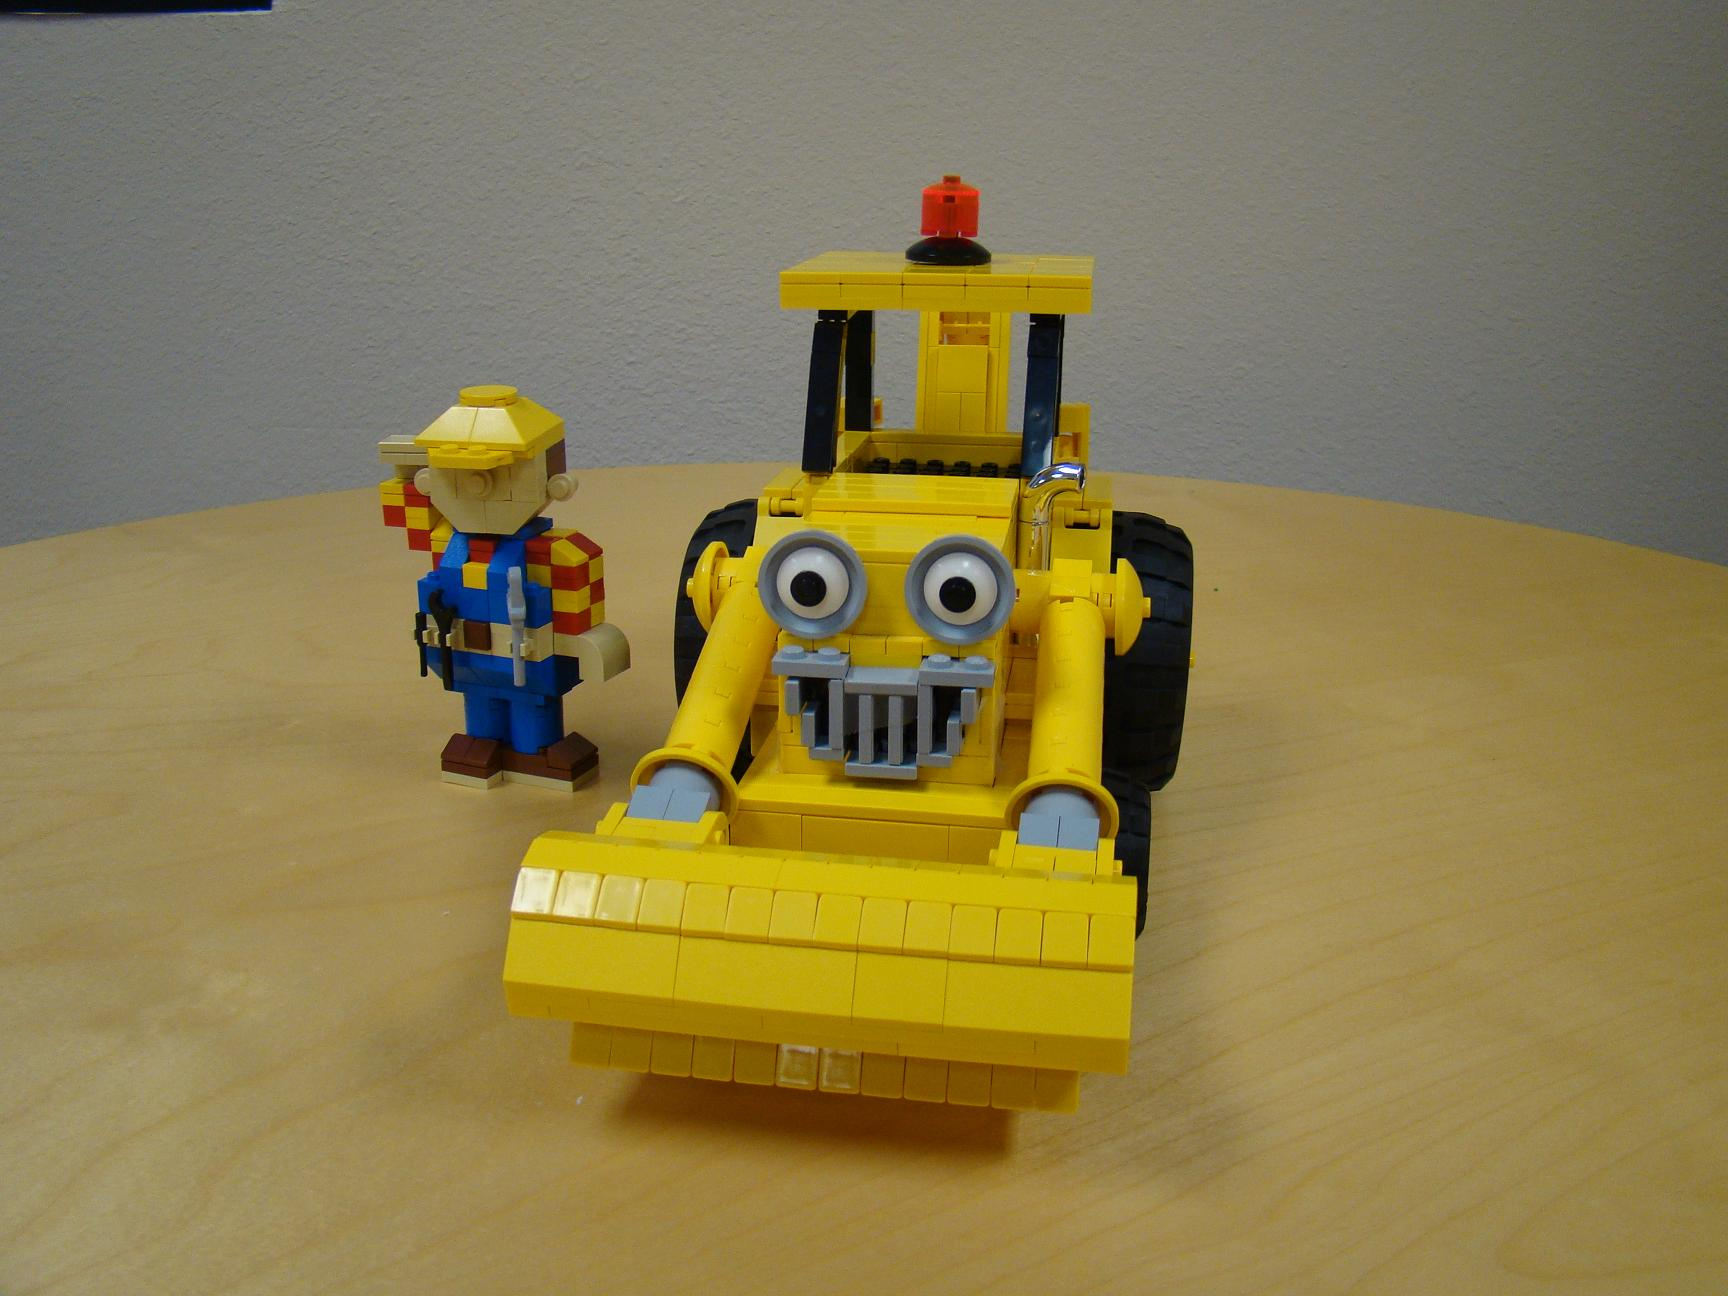 Bob the Builder and Scoop